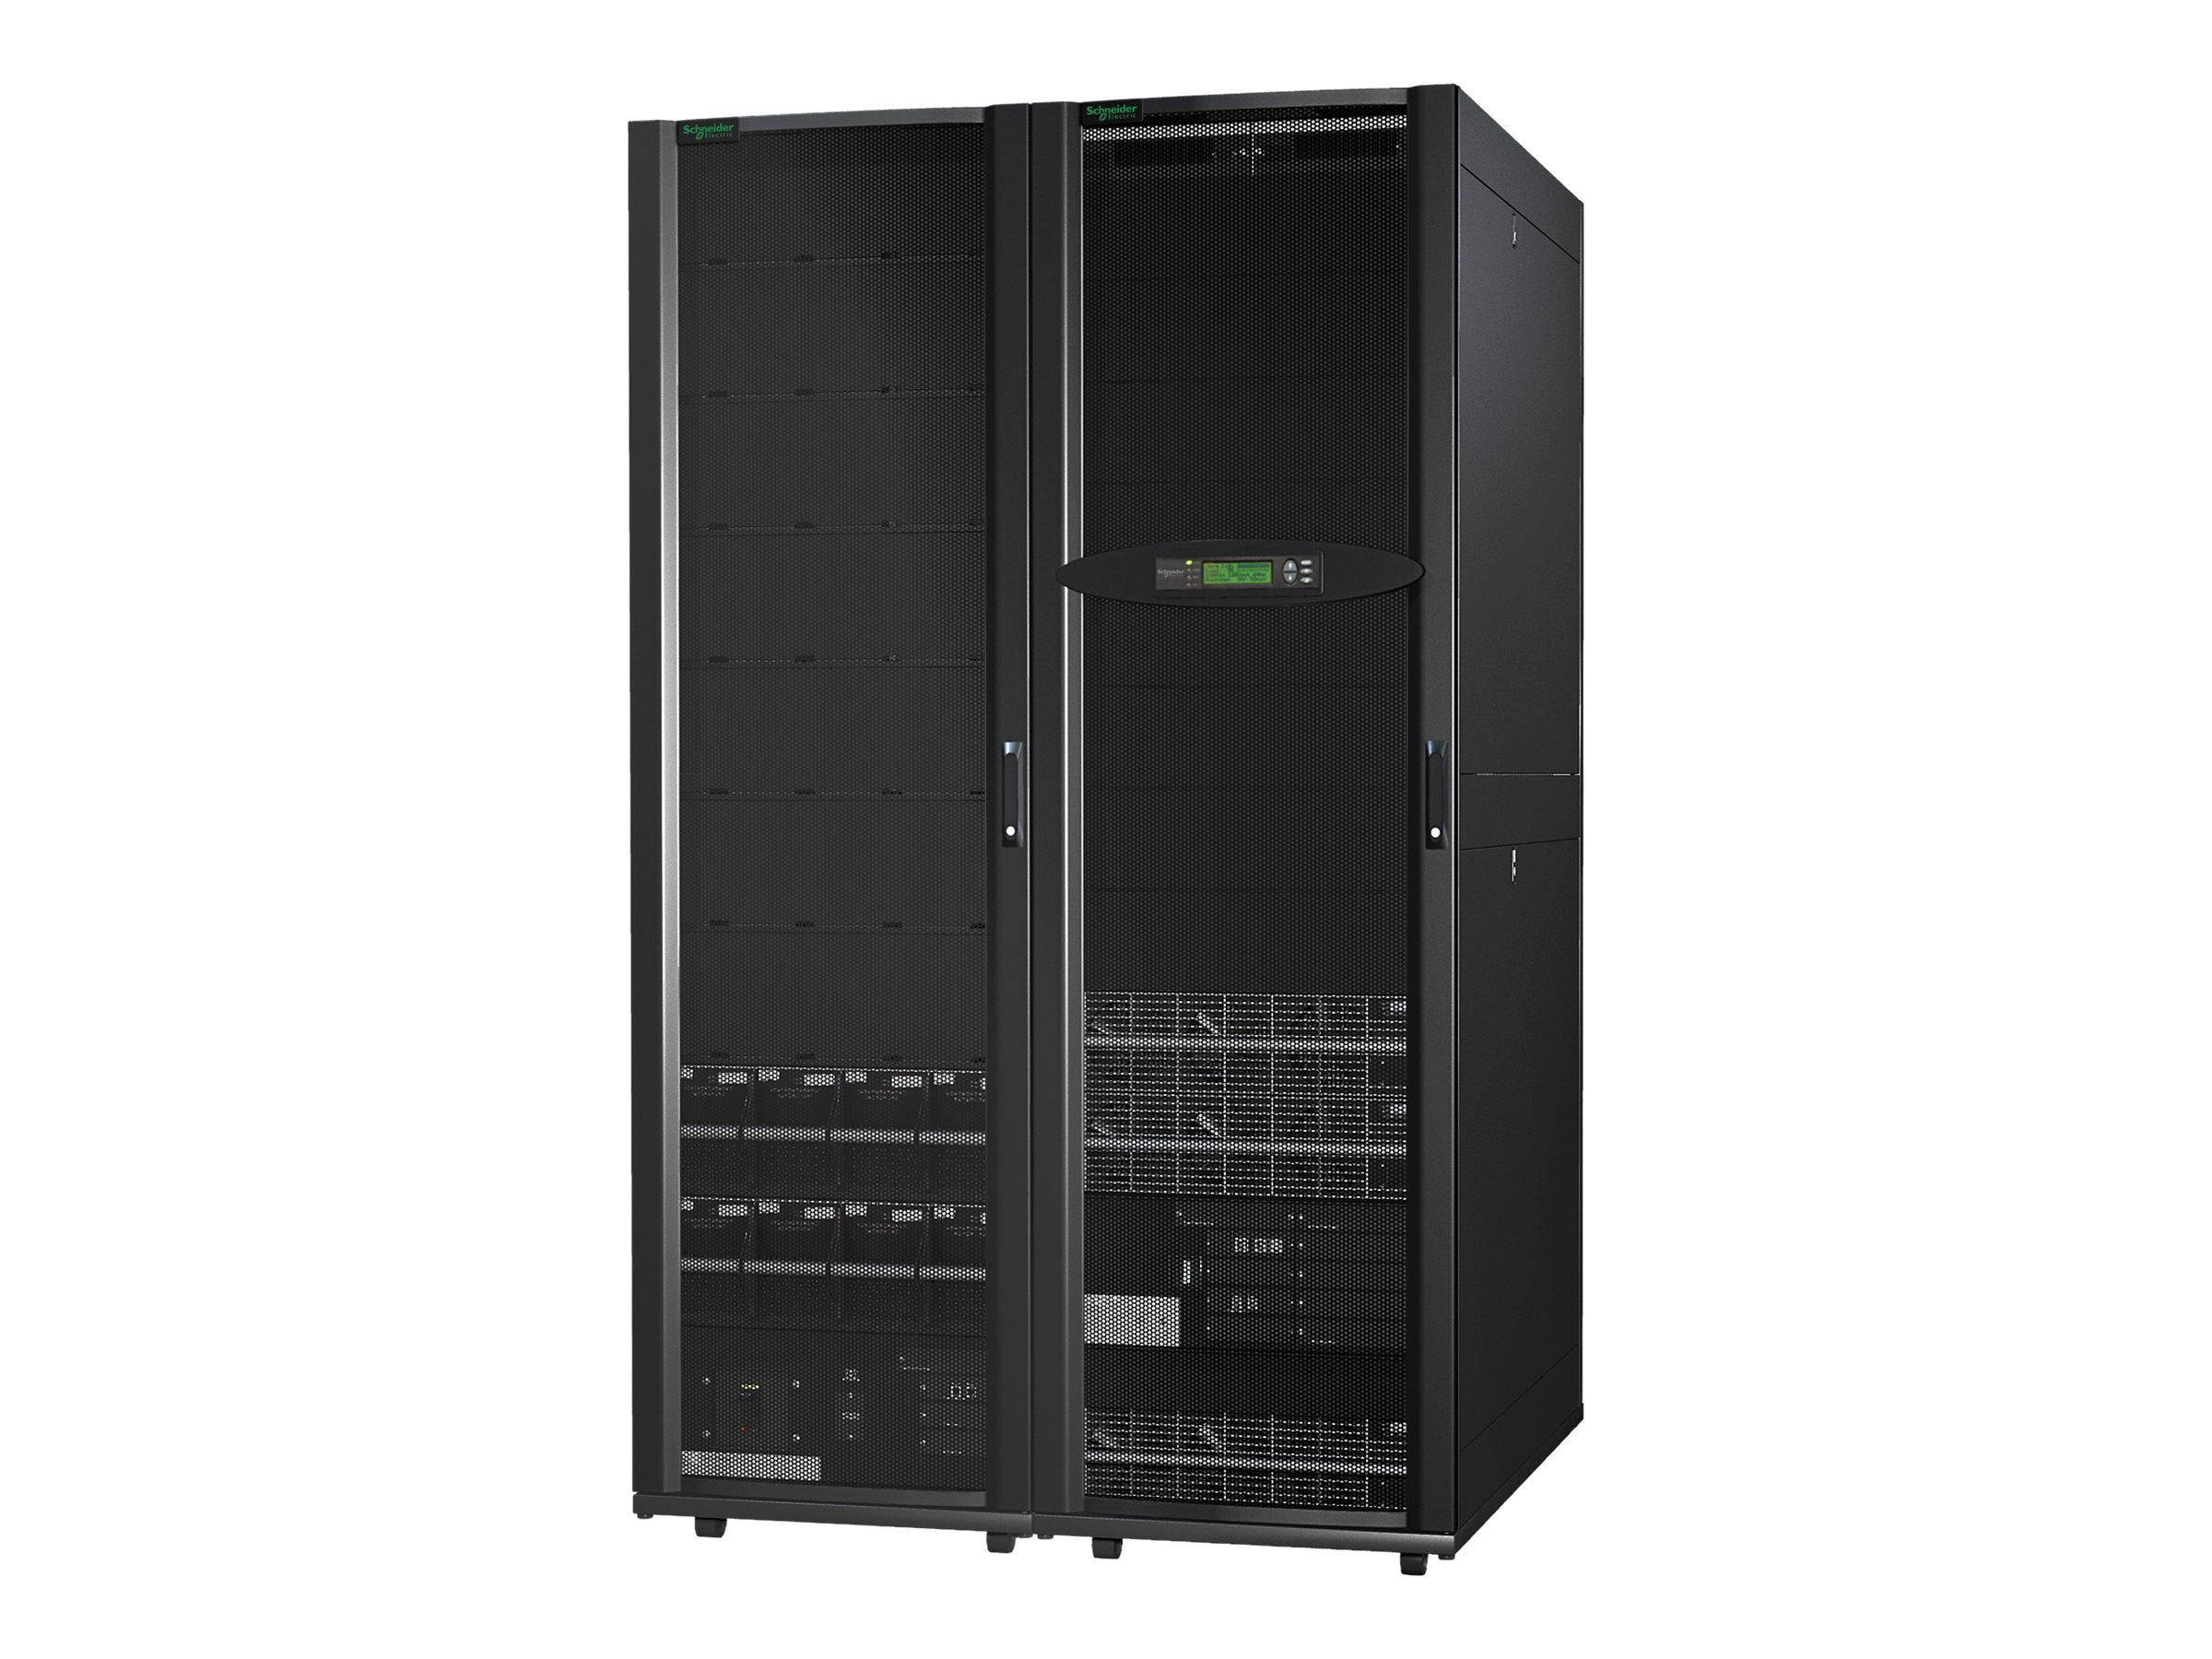 APC Symmetra PX 20kW Scalable to 100kW, 208V with Web SNMP Card, Startup, SY20K100F